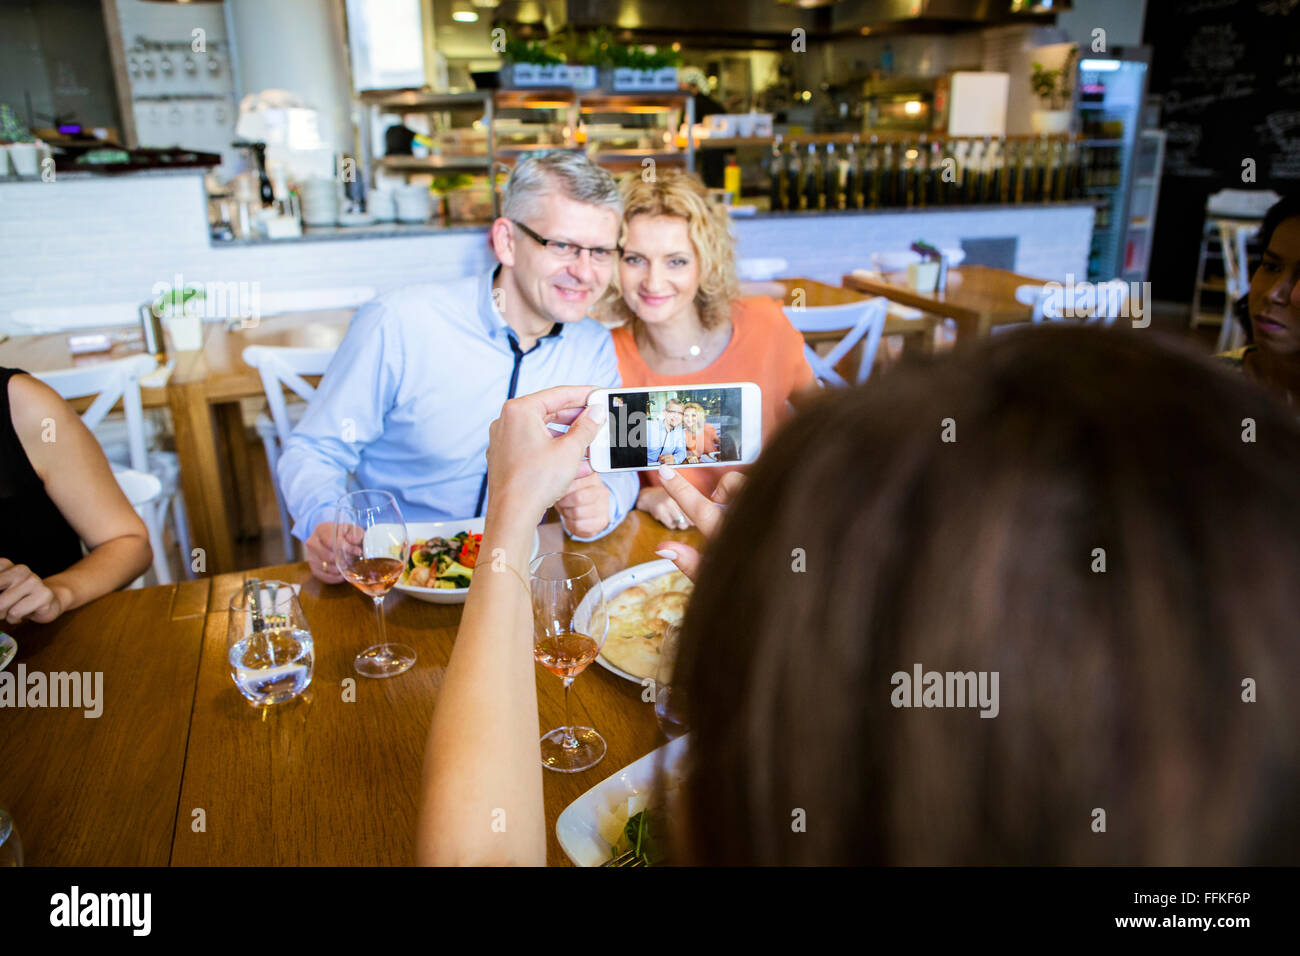 Taking a picture of friends in restaurant - Stock Image